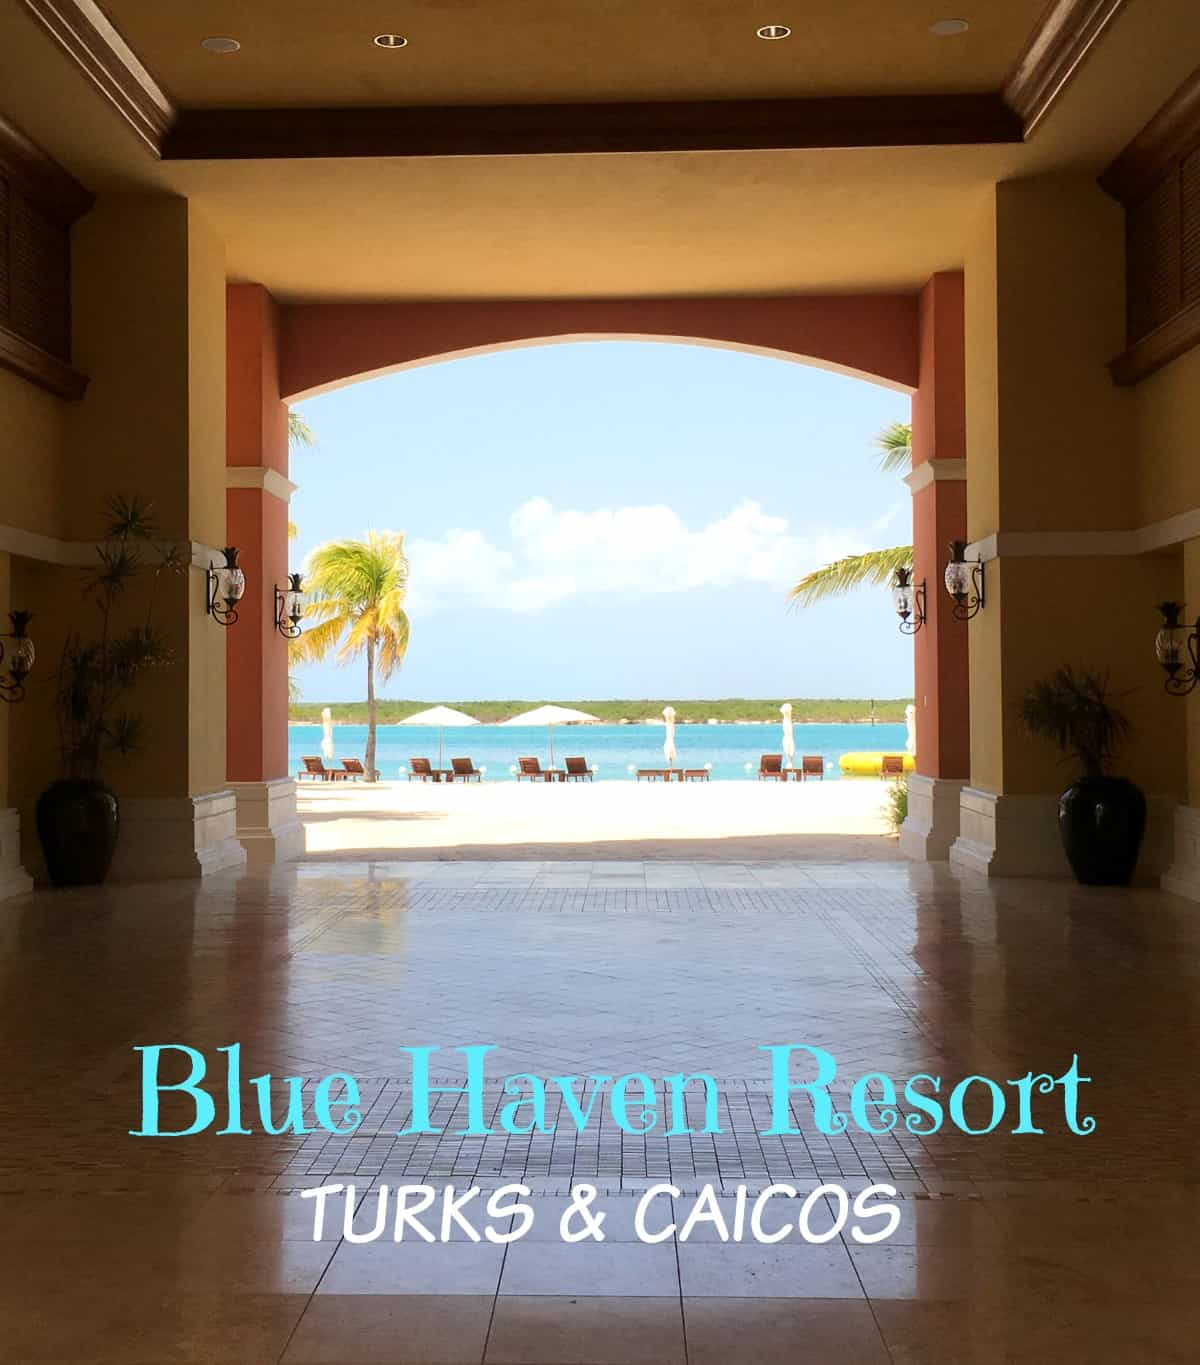 blue haven resorts turks and caicos canadian travel blogger review